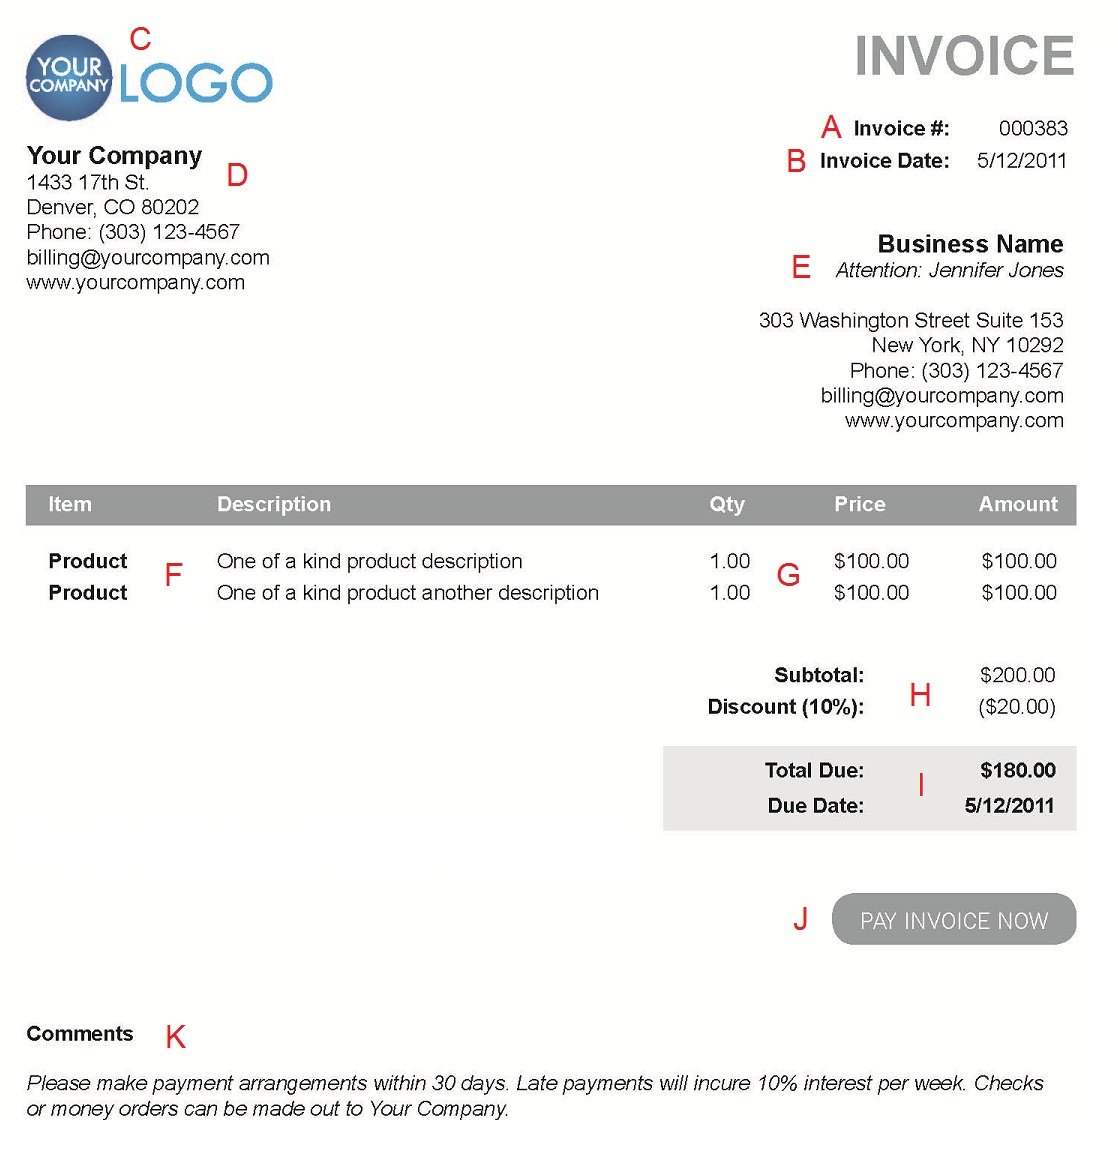 Darkfaderus  Remarkable The  Different Sections Of An Electronic Payment Invoice With Exciting A  With Nice Meaning Of Invoicing Also Letter Requesting Payment Of Invoice In Addition Proforma Invoice Nz And What Is An Invoice In Business As Well As Rails Invoice Additionally Invoicing For Mac From Paysimplecom With Darkfaderus  Exciting The  Different Sections Of An Electronic Payment Invoice With Nice A  And Remarkable Meaning Of Invoicing Also Letter Requesting Payment Of Invoice In Addition Proforma Invoice Nz From Paysimplecom